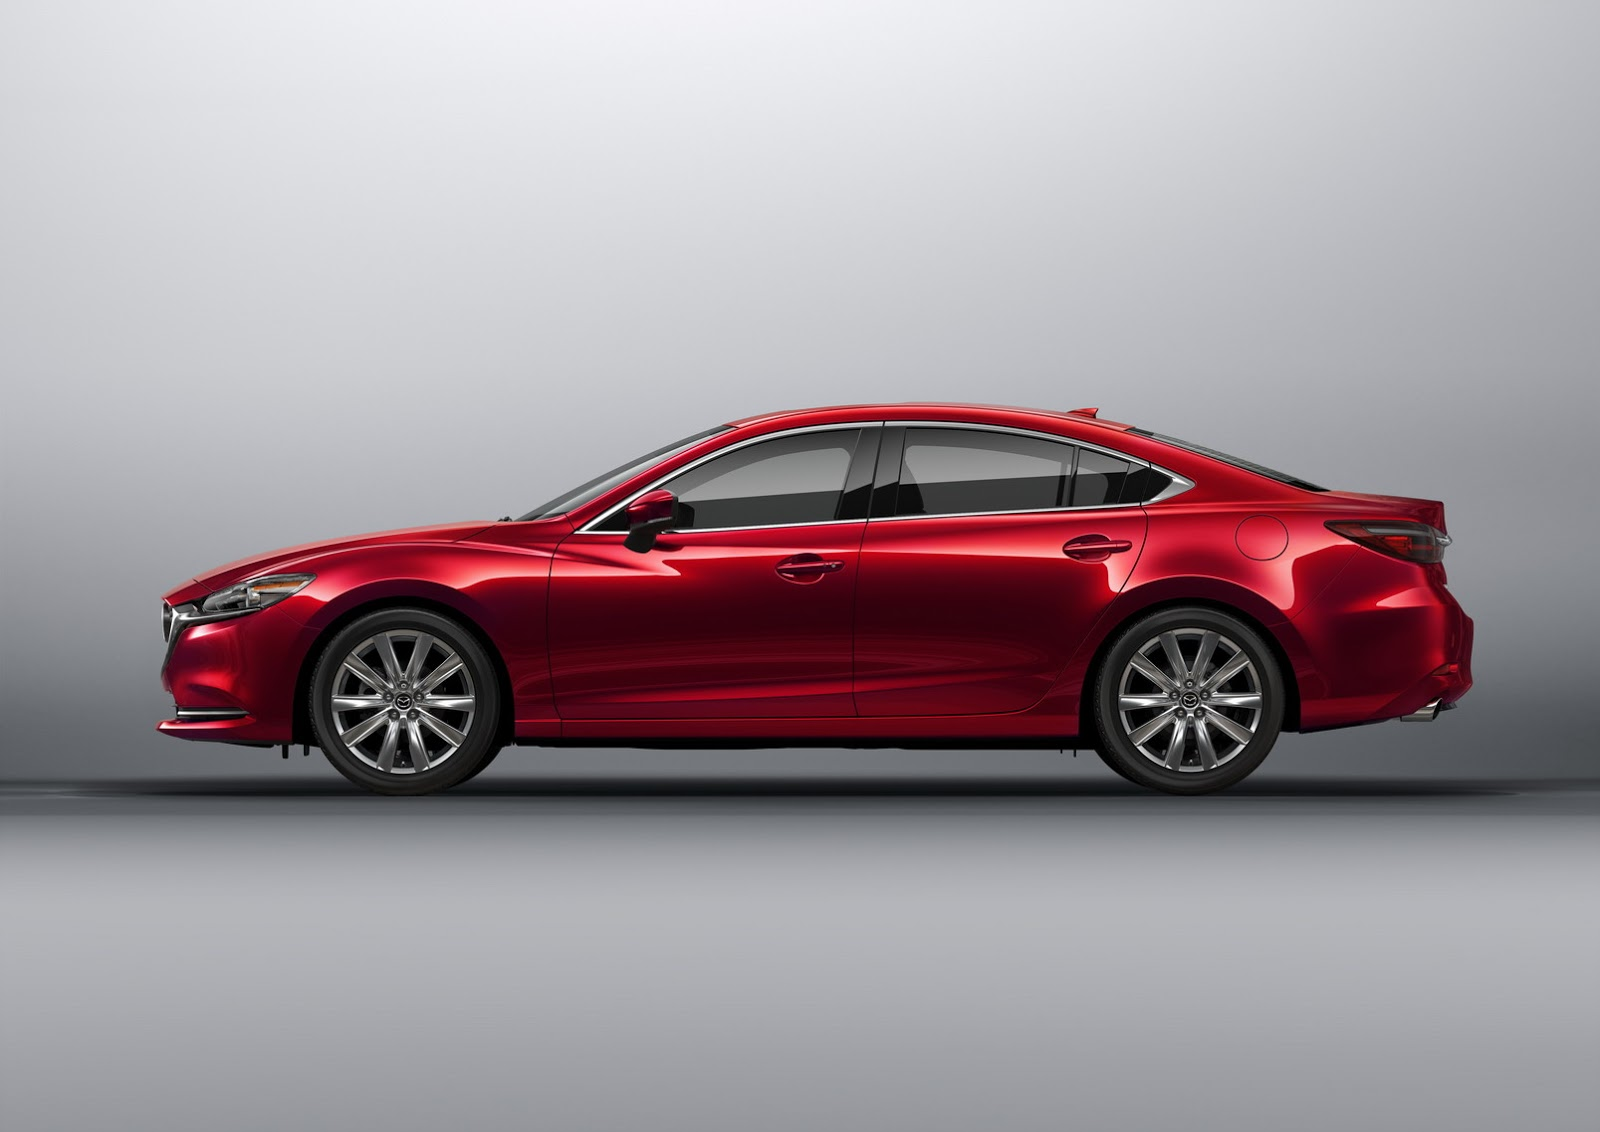 2014 mazda6 coupe rendering autoevolution. Black Bedroom Furniture Sets. Home Design Ideas